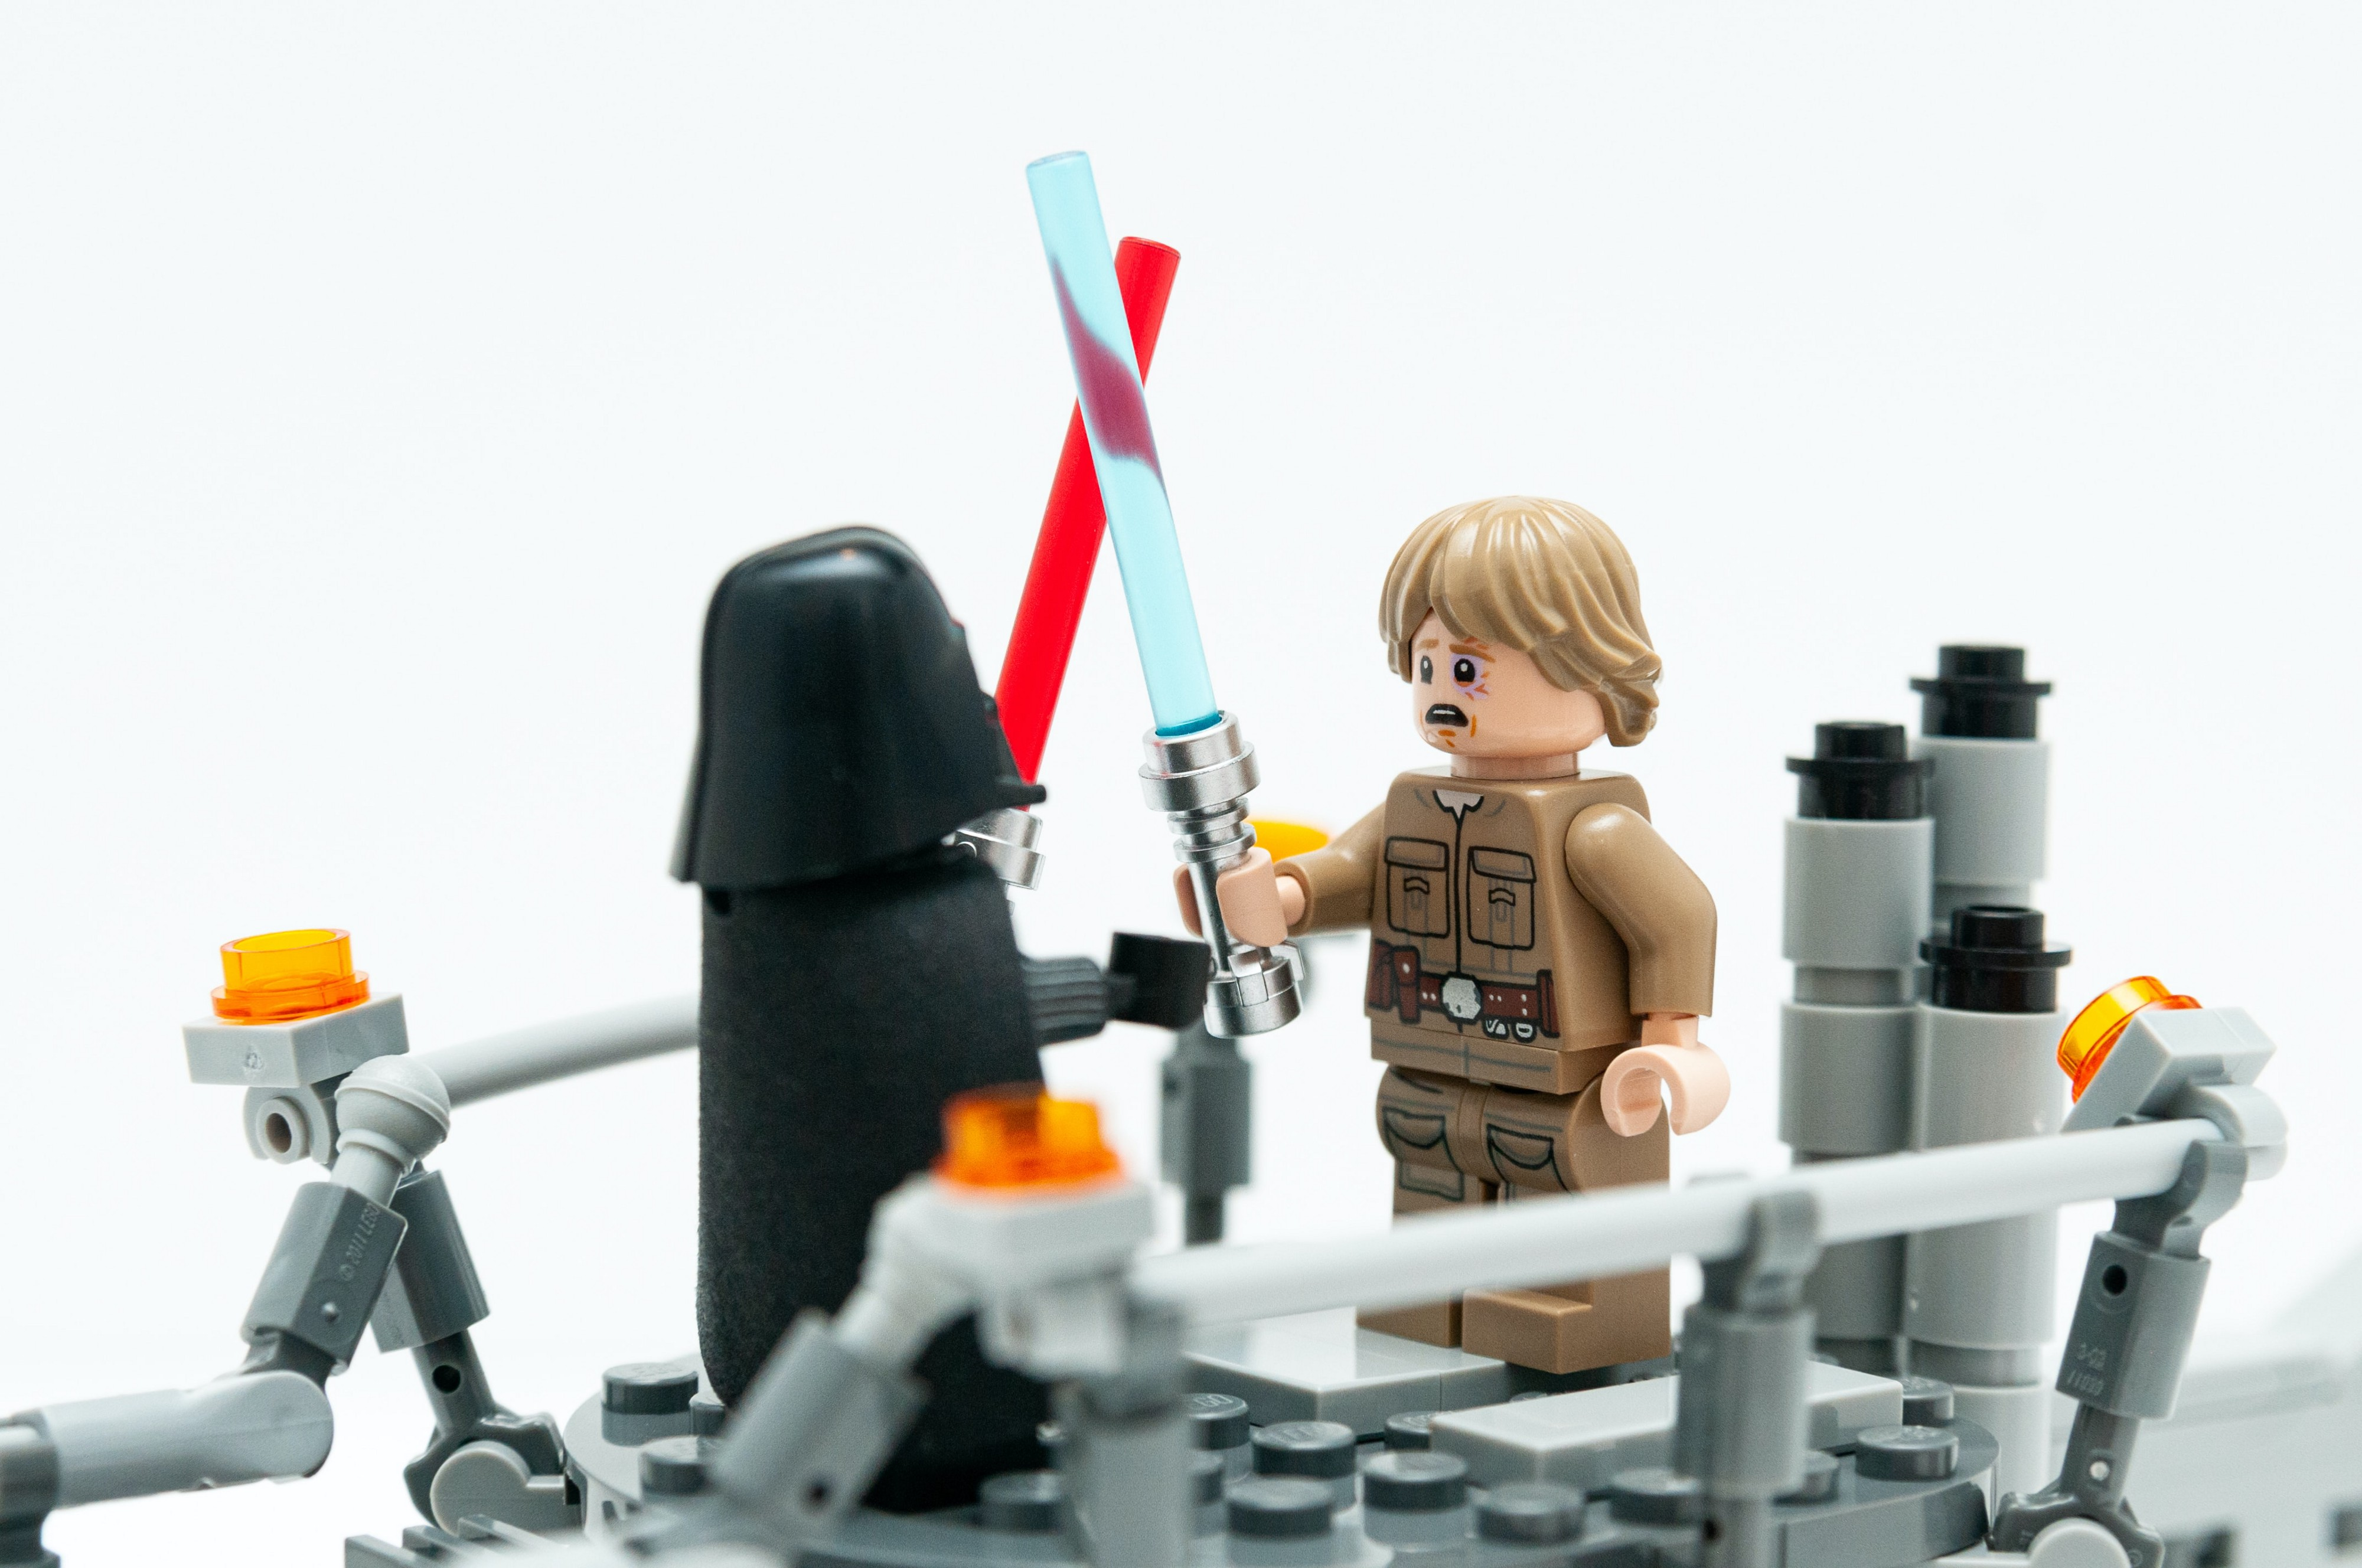 A lego Luke Skywalker fighting a lego Darth Vader with their light sabres. Luke looks unhappy.